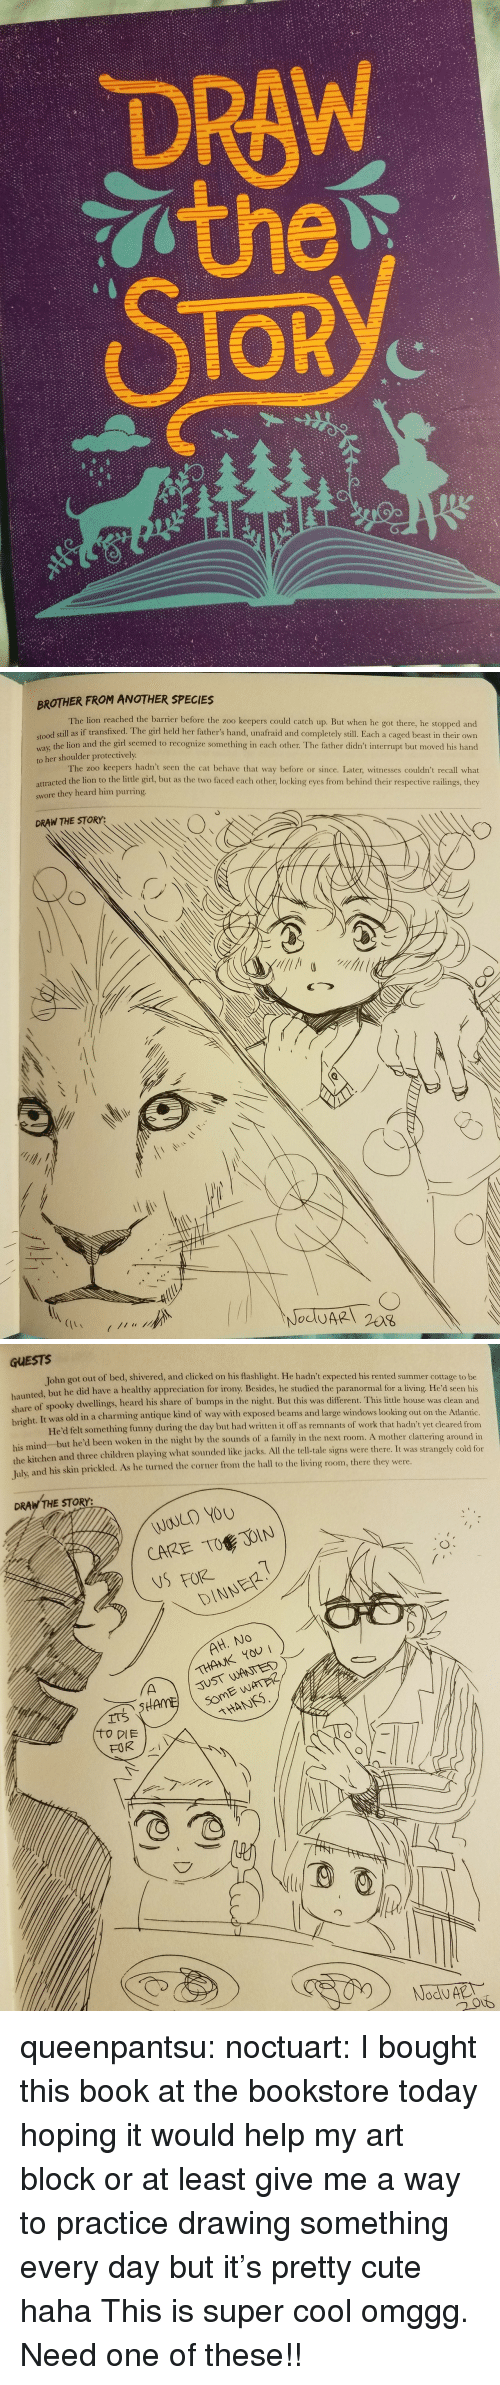 two faced: DRAW  TOR  2/   BROTHER FROM ANOTHER SPECIES  The lion reached the barrier before the zoo keepers could catch up. But when he got there, he stopped and  dl still as if transfixed. The girl held her father's hand, unafraid and completely still. Each a caged beast in their own  way, the lion and the girl seemed to recognize something in cach other. The father didn't interrupt but moved his hand  to her shoulder protectively  The zoo keepers hadn't seen the cat behave that way before or since. Later, witnesses couldn't recall what  attracted the lion to the little girl, but as the two faced each other, locking eyes from behind their respective railings, they  swore they heard him purring  DRAW THE STORY:   GUESTS  John got out of bed, shivered, and clicked on his flashlight. He hadn't expected his rented summer cottage to be  nted, but he did have a healthy appreciation for irony. Besides, he studied the paranormal for a living. He'd seen his  share  of spooky dwellings, heard his share of bumps in the night. But this was different. This little house was clean and  It was old in a charming antique kind of way with exposed beams and large windows looking out on the Atlantic  He'd felt something funny during the day but had written it off as remnants of work that hadn't yet cleared from  right.  his mind but he'd been woken in the night by the sounds of a family in the next room. A mother  the kitchen and three children playing what sounded like jacks. All the tell-tale signs were there. It was stran  Tulx  and his skin prickled. As he turned the corner from the hall to the living room, there they were.  clattering around in  gely cold for  DRAW THE STORY:  WOULD YOU  CARE TO JOIN  NSFORE  DINNER  THANK YOU  JUST WANTED  THANS queenpantsu:  noctuart:  I bought this book at the bookstore today hoping it would help my art block or at least give me a way to practice drawing something every day but it's pretty cute haha  This is super cool omggg. Need one of these!!